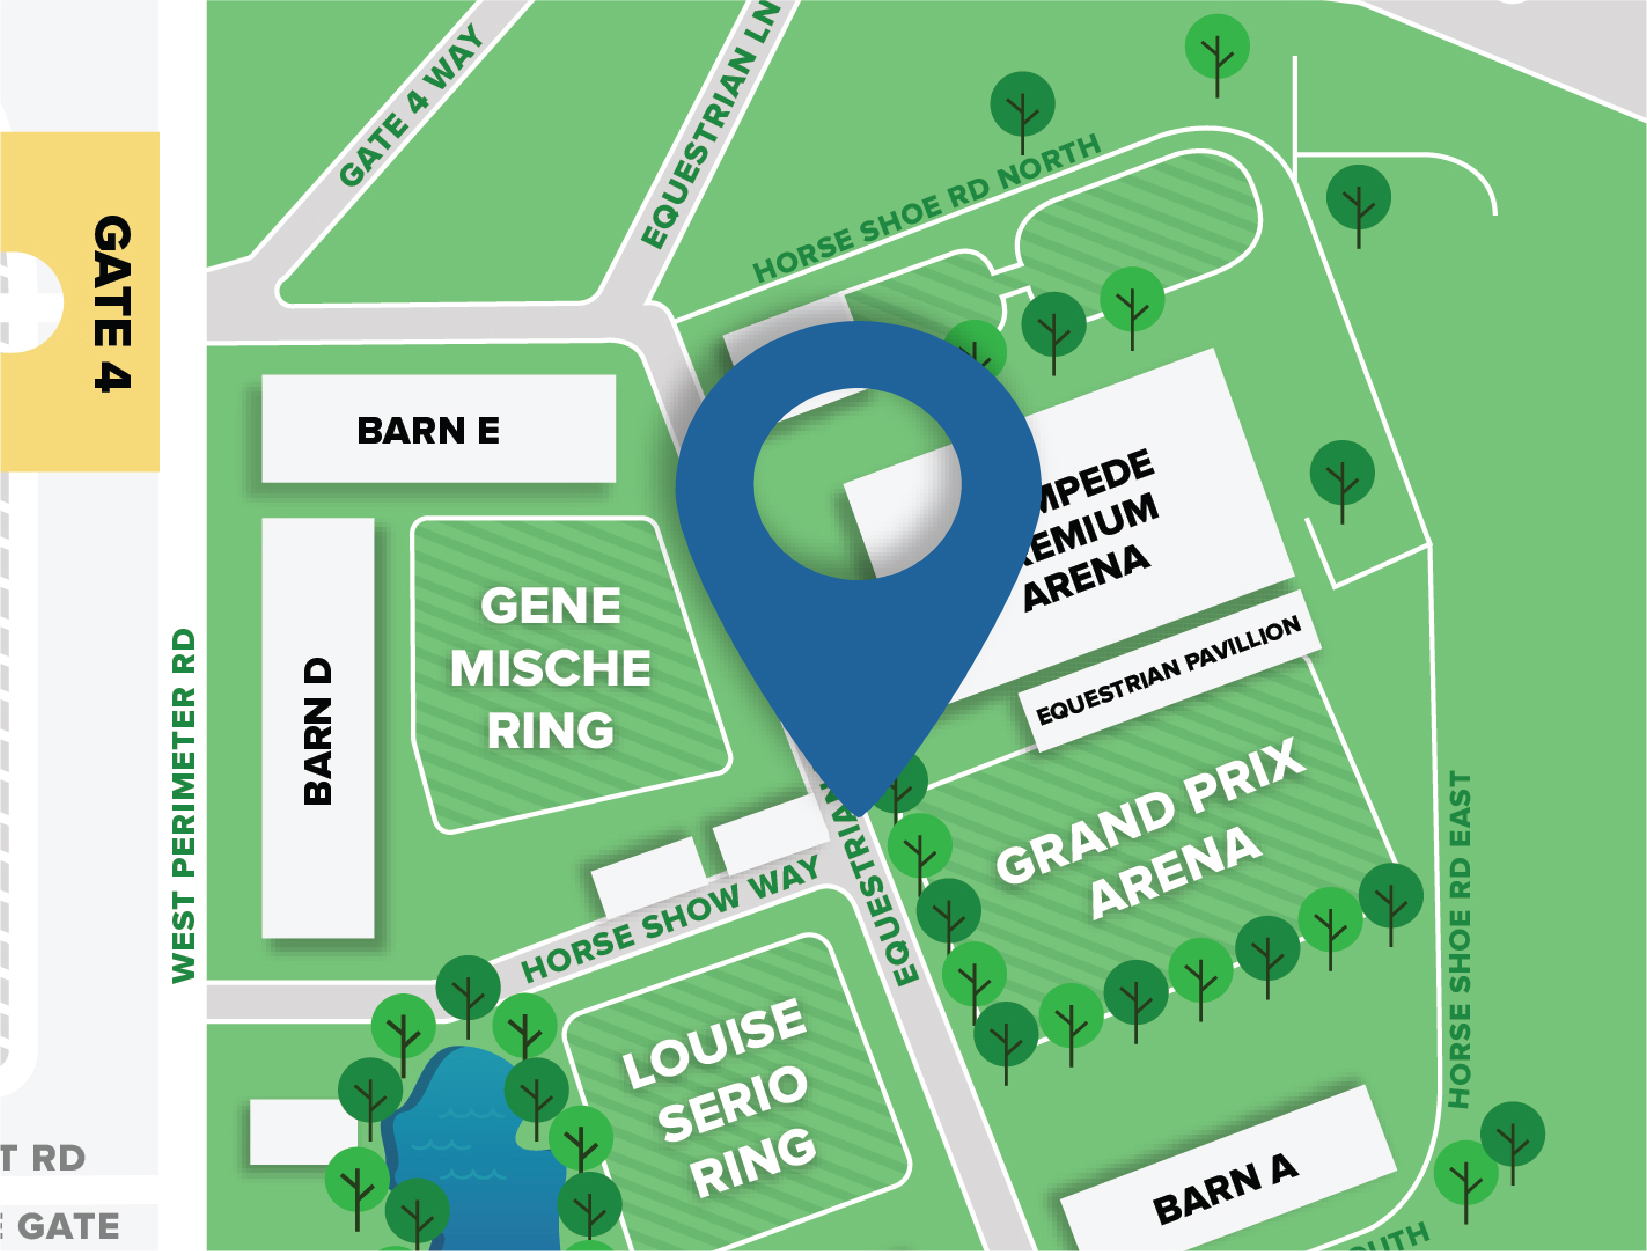 The Bob Thomas Equestrian Center Location Map